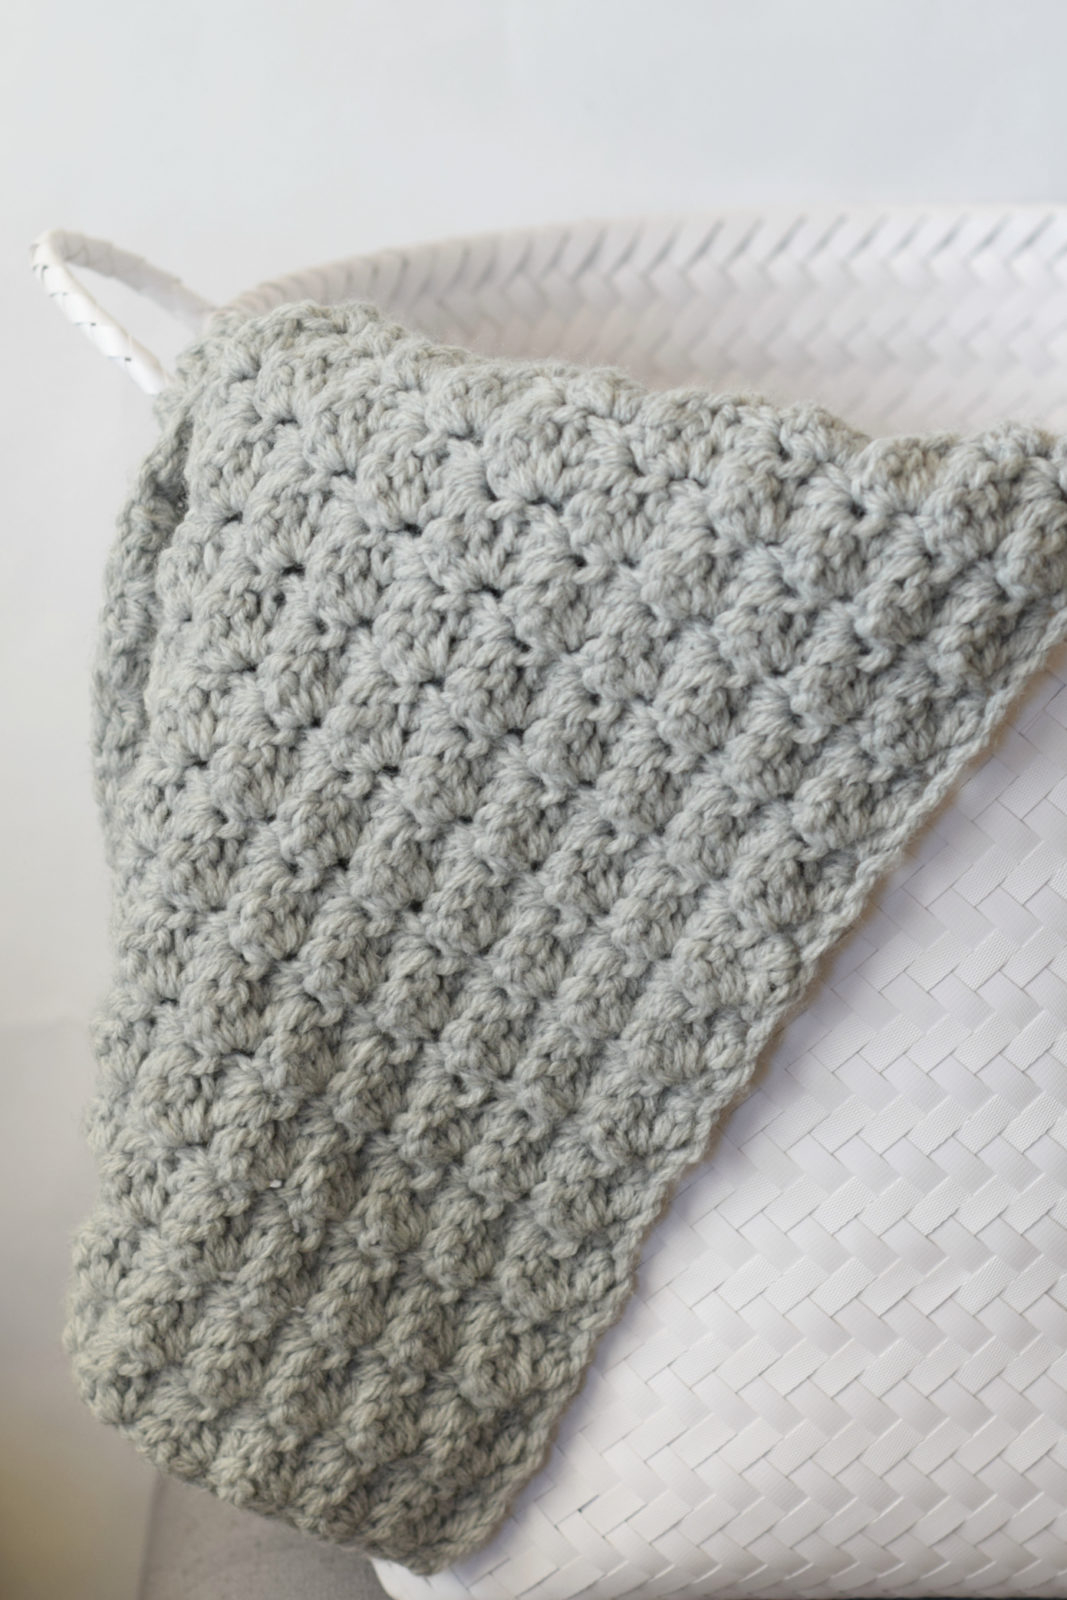 Blanket Crochet Pattern Simple Crocheted Blanket Go To Pattern Mama In A Stitch